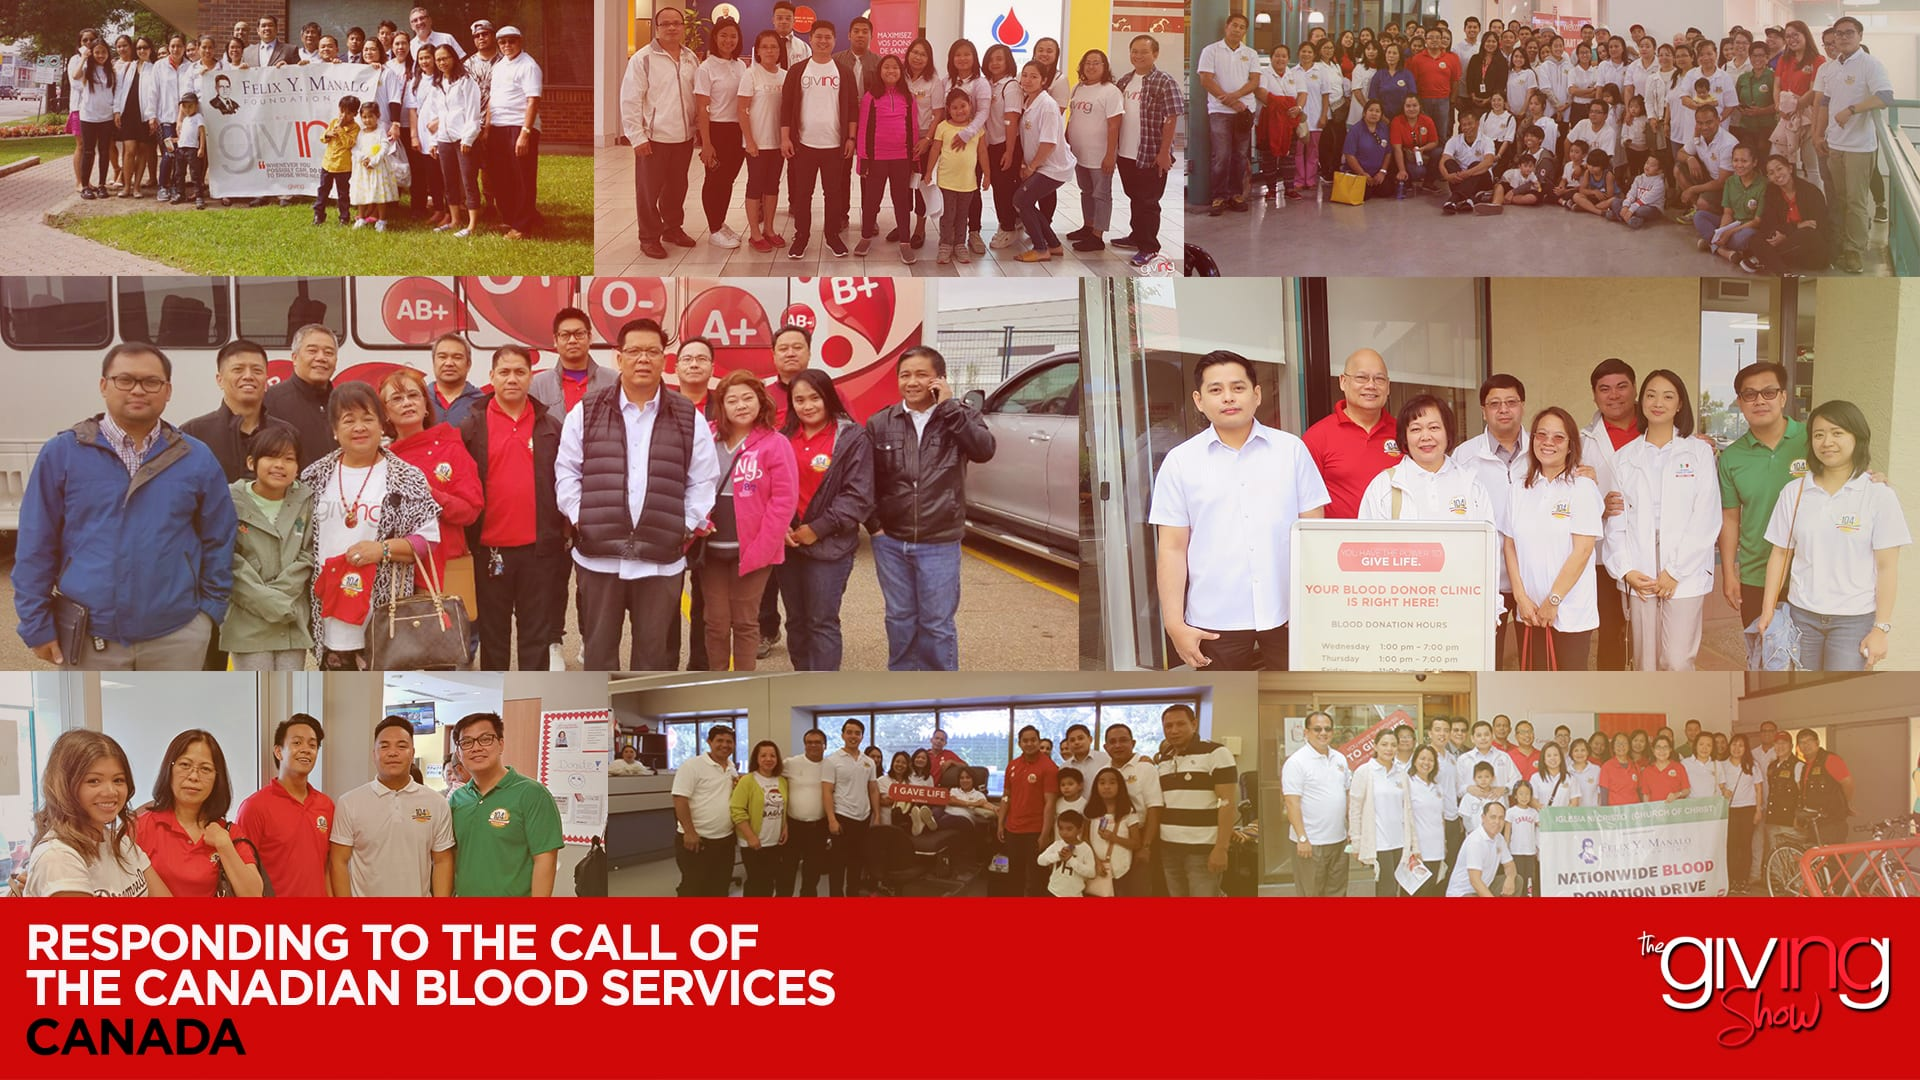 Responding to the Call of Canadian Blood Services